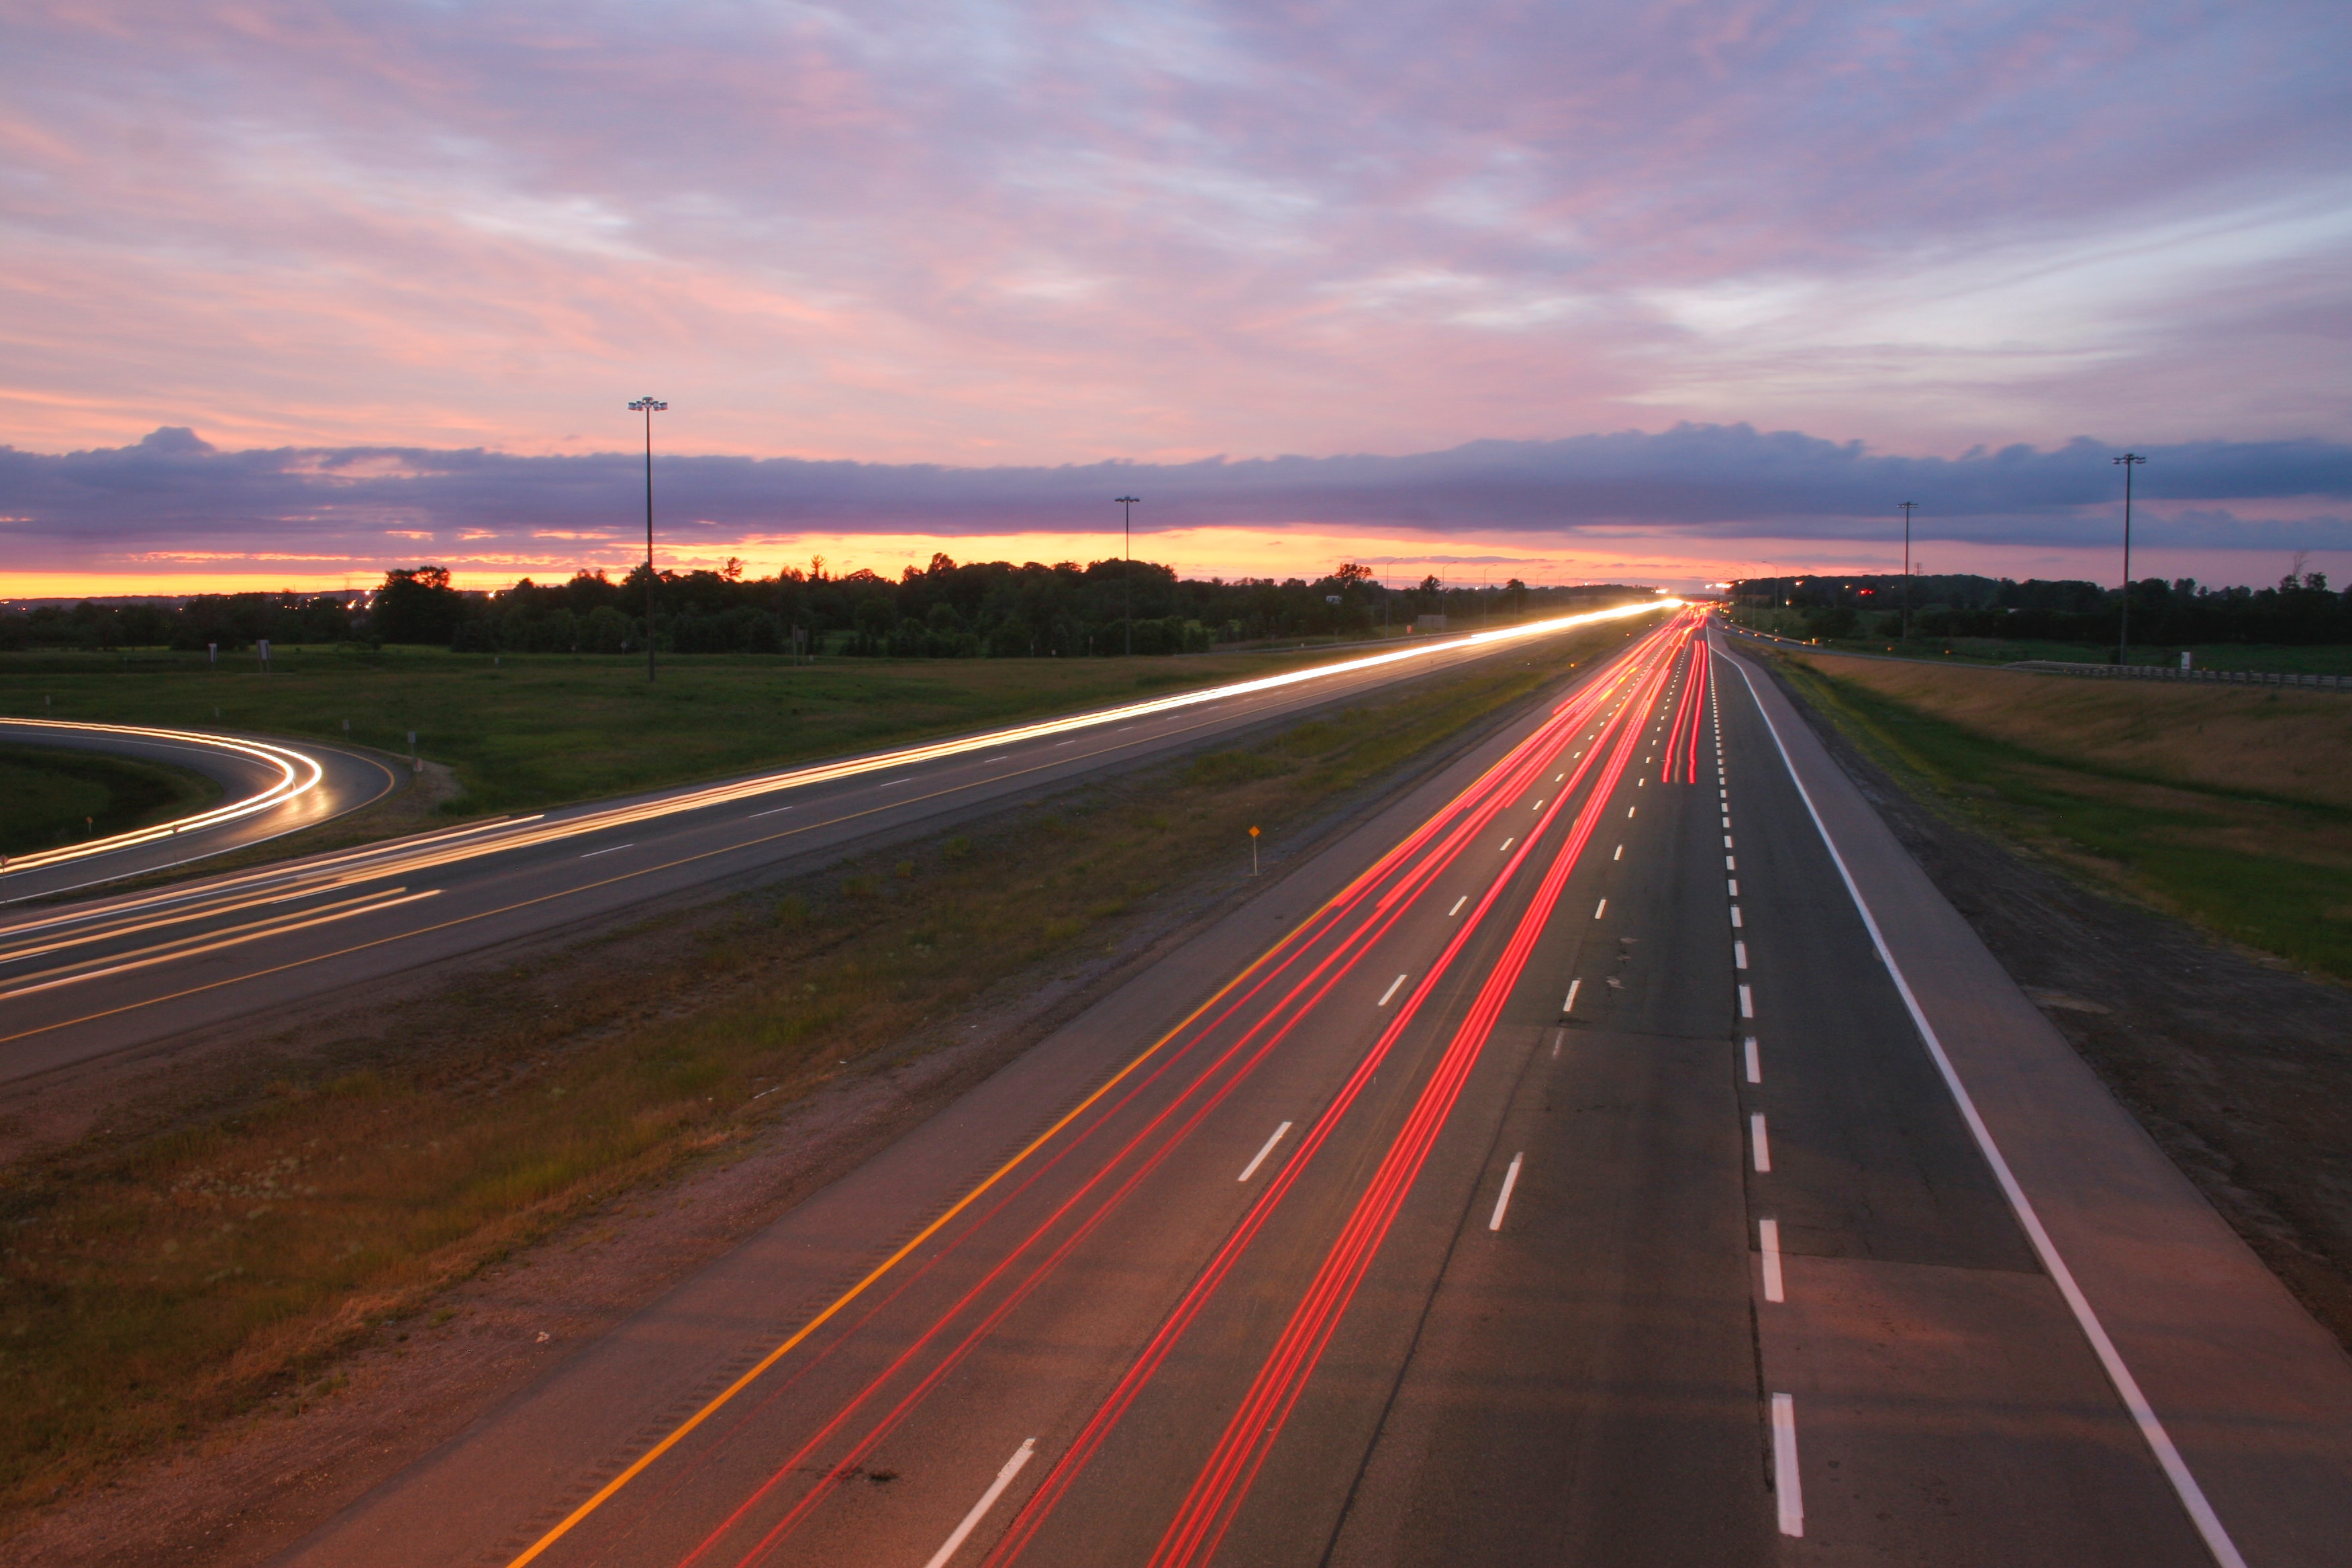 - A highway with streams of red and orange lights. It is dusk, with a dark blue and pink sky and some yellow light from the setting sun.